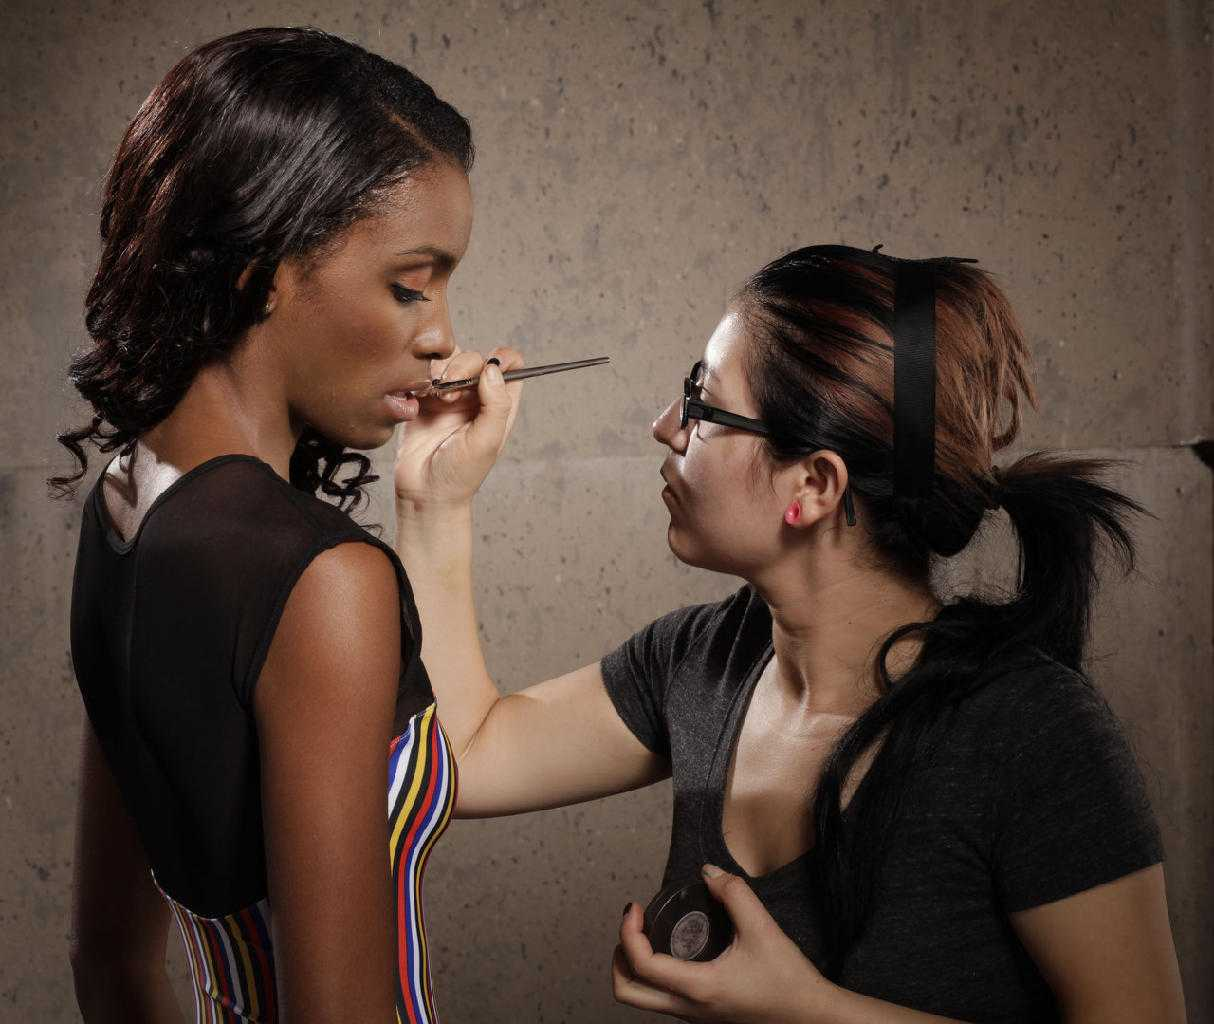 Madrid Spain Makeup School - Enroll Into Our Makeup Courses